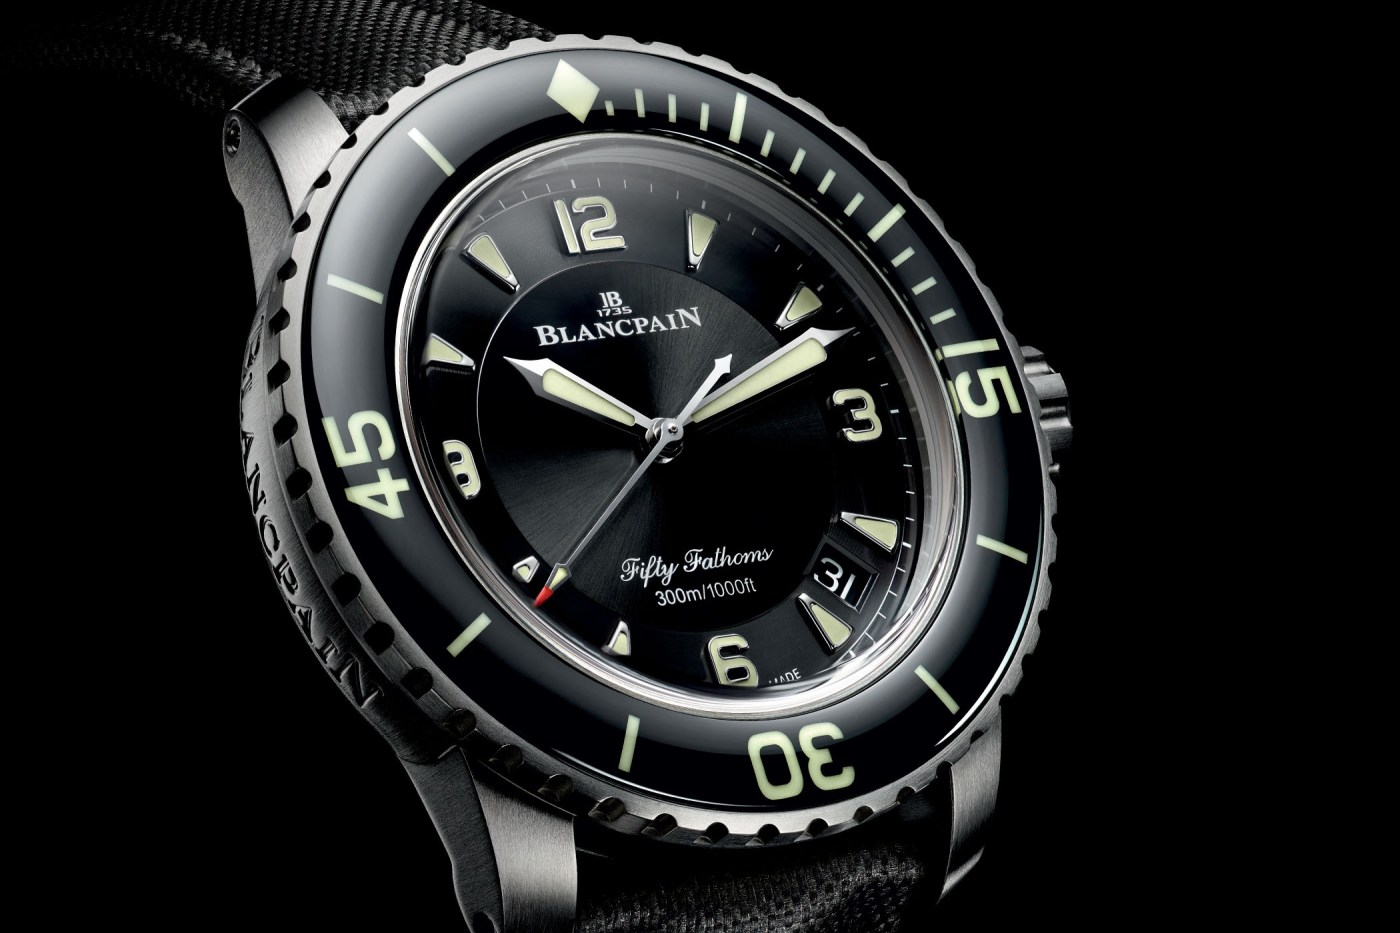 Fifty Fathoms Automatic 5015 Titanium